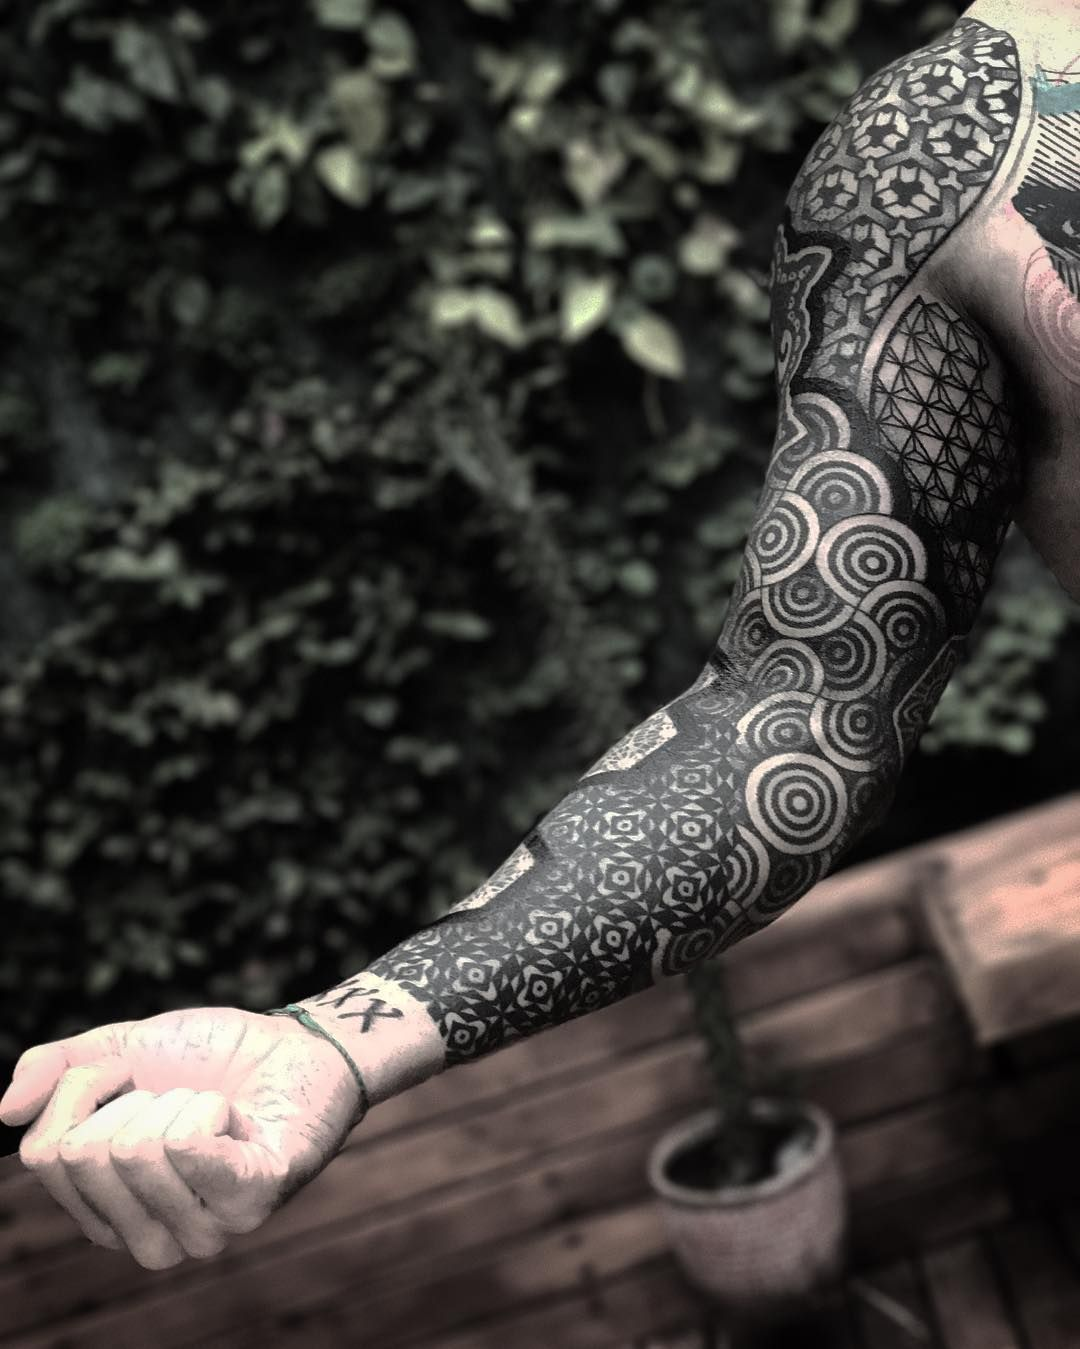 Geometric Sleeve Full Sleeve Tattoos Sleeve Tattoos Geometric Sleeve Tattoo